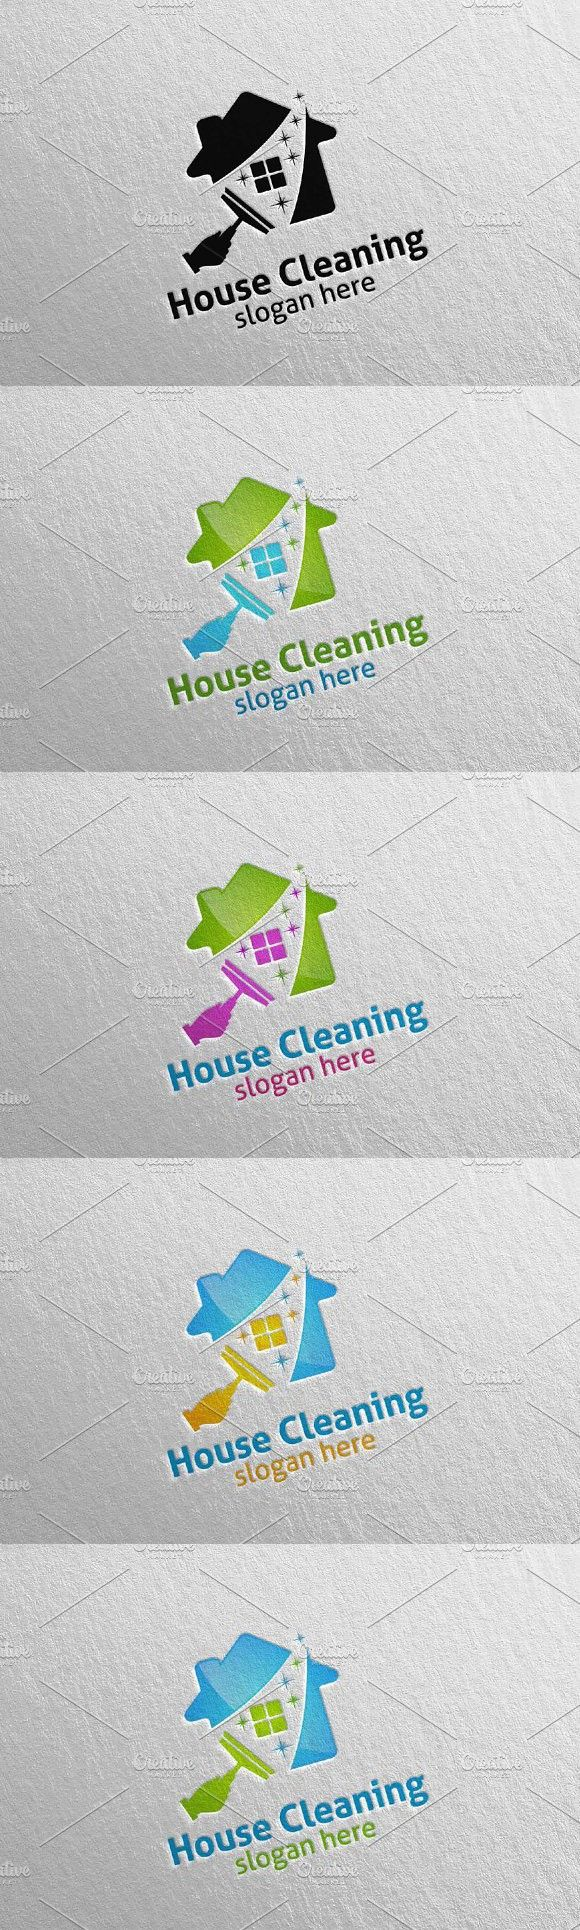 House cleaning services vector logo Vector logo, Clean